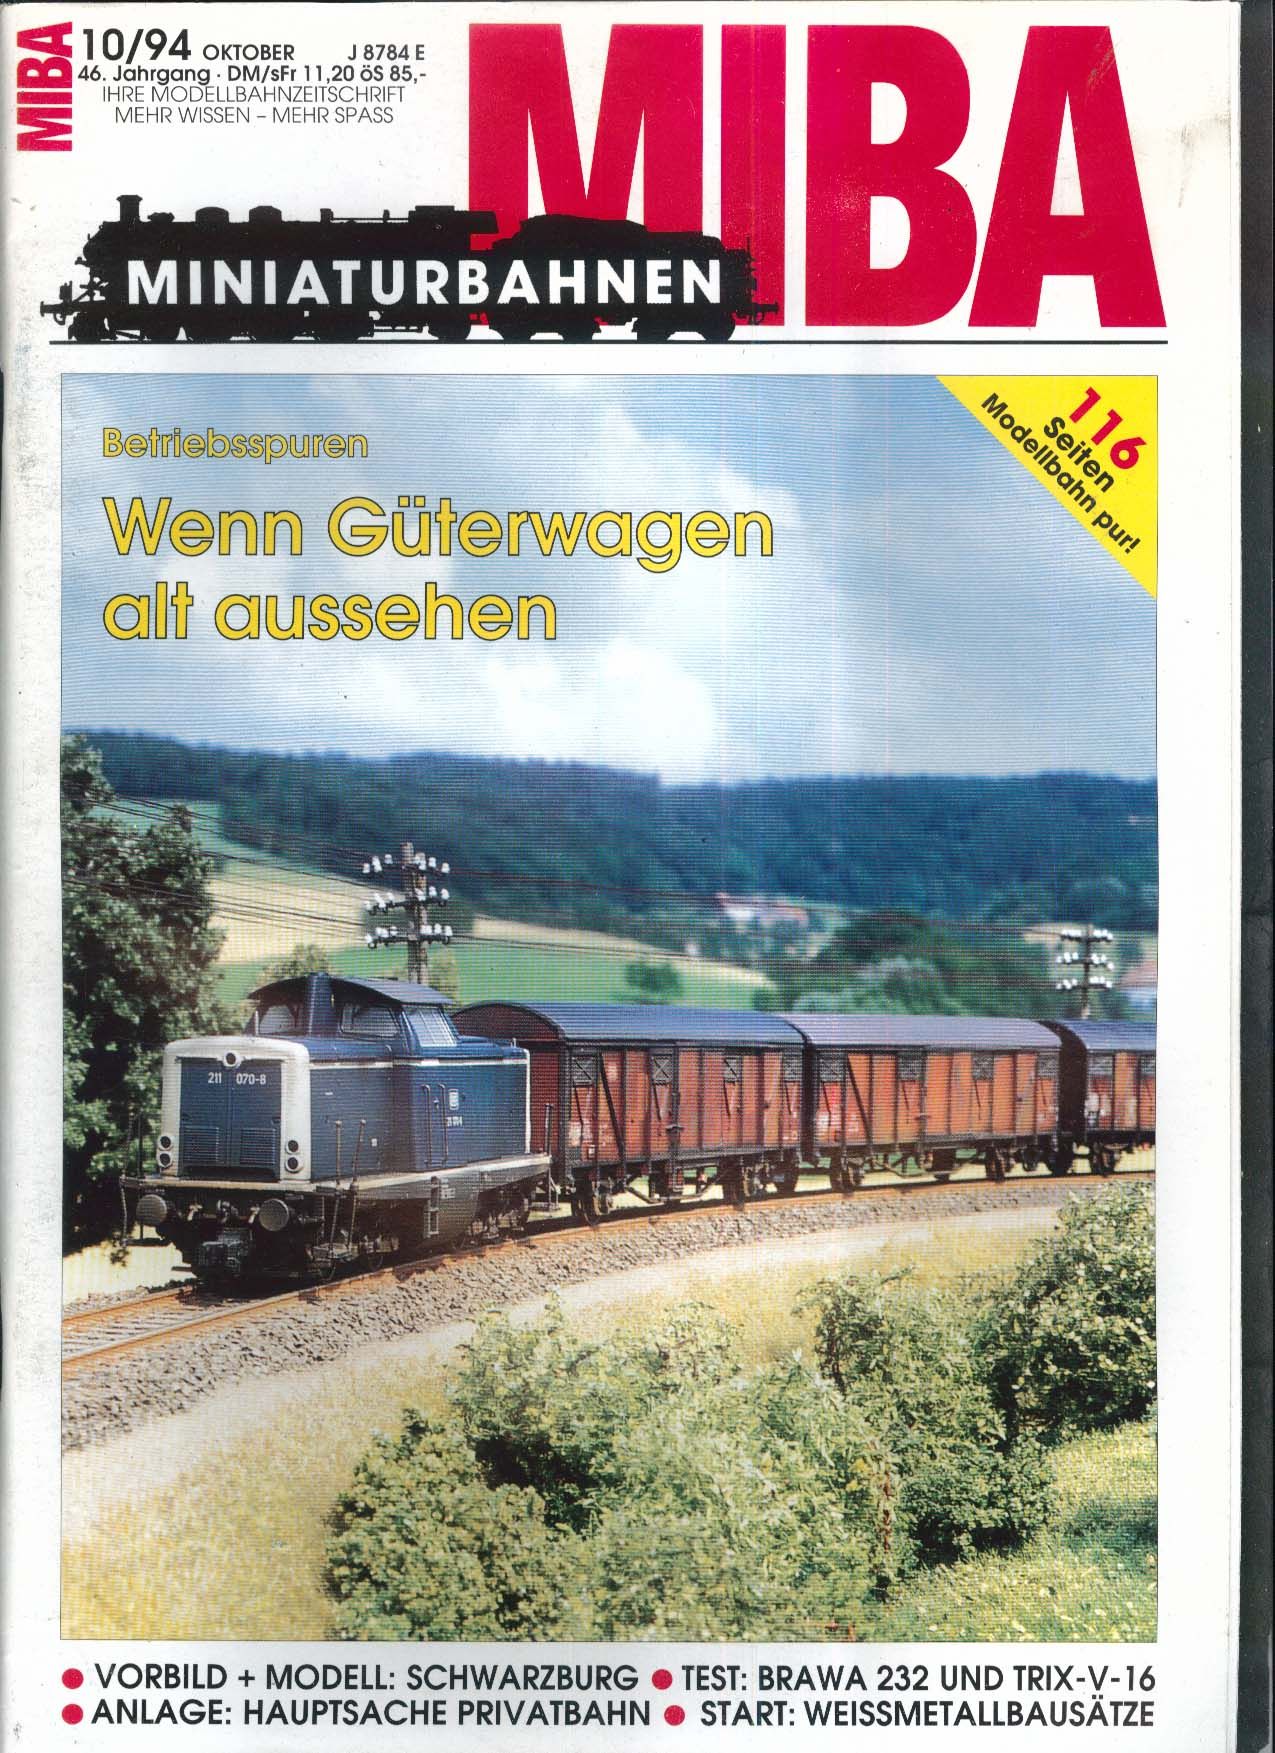 MIBA-Miniaturbahnen German-language model train magazine Vorbild Modell 10 1994